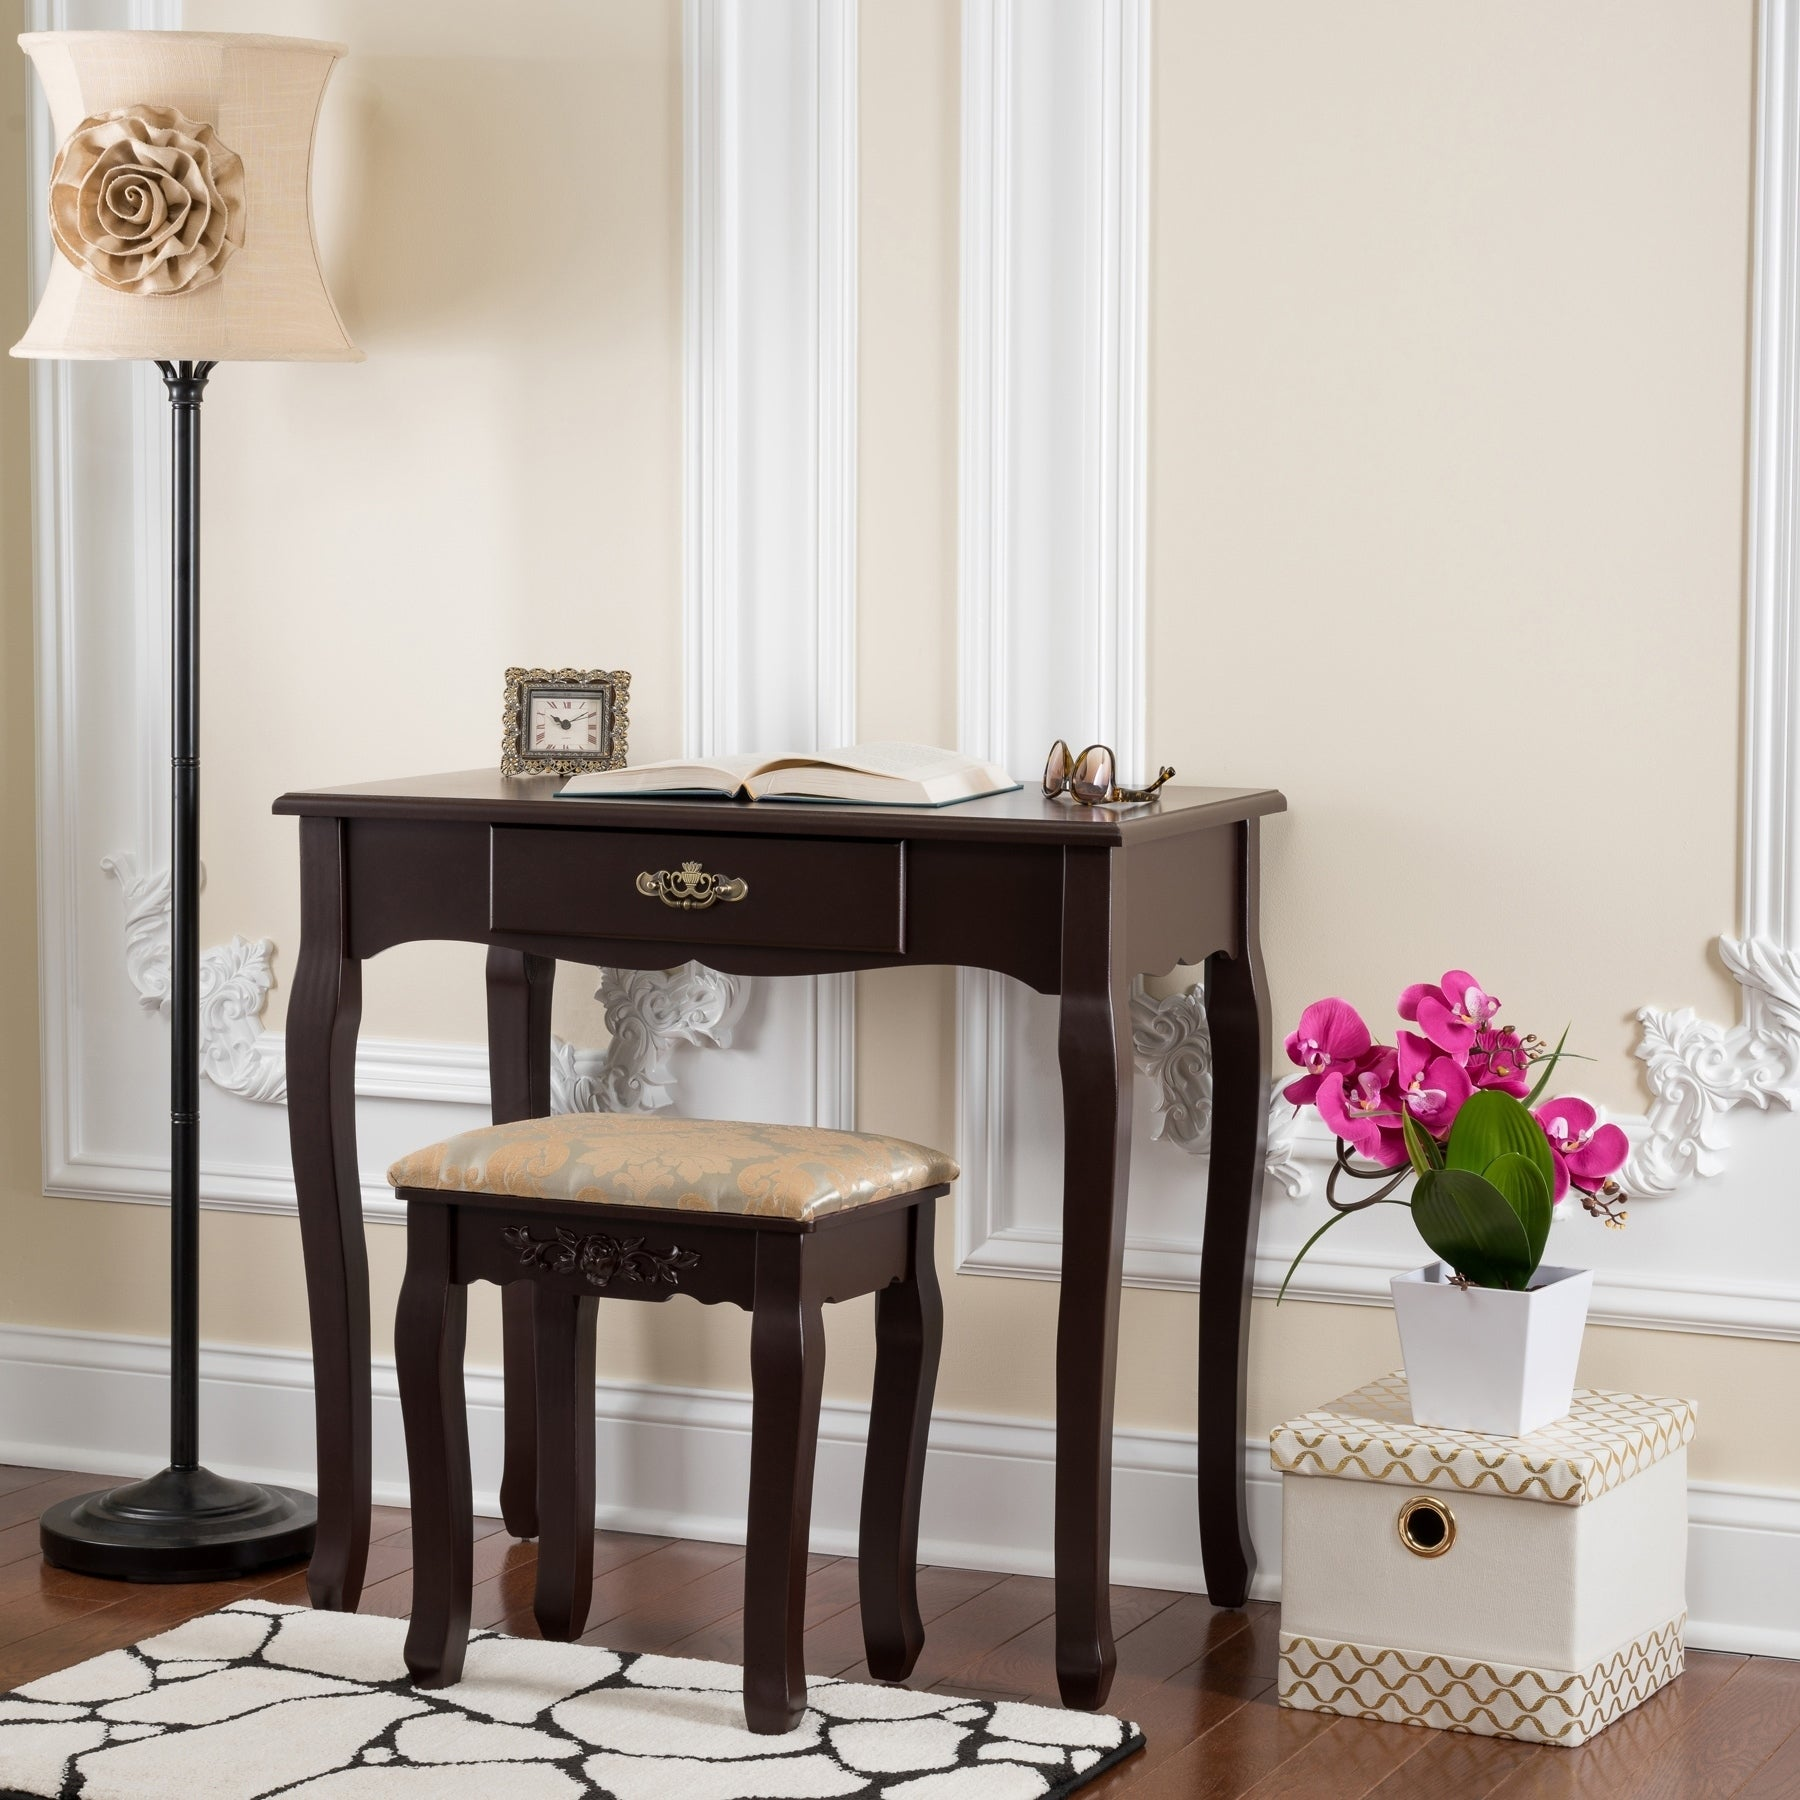 Incroyable Shop Fineboard Vanity Table Set Wooden Dressing Table With Single Mirror,  Organization Drawers Makeup Table U0026 Stool   Free Shipping Today    Overstock.com   ...